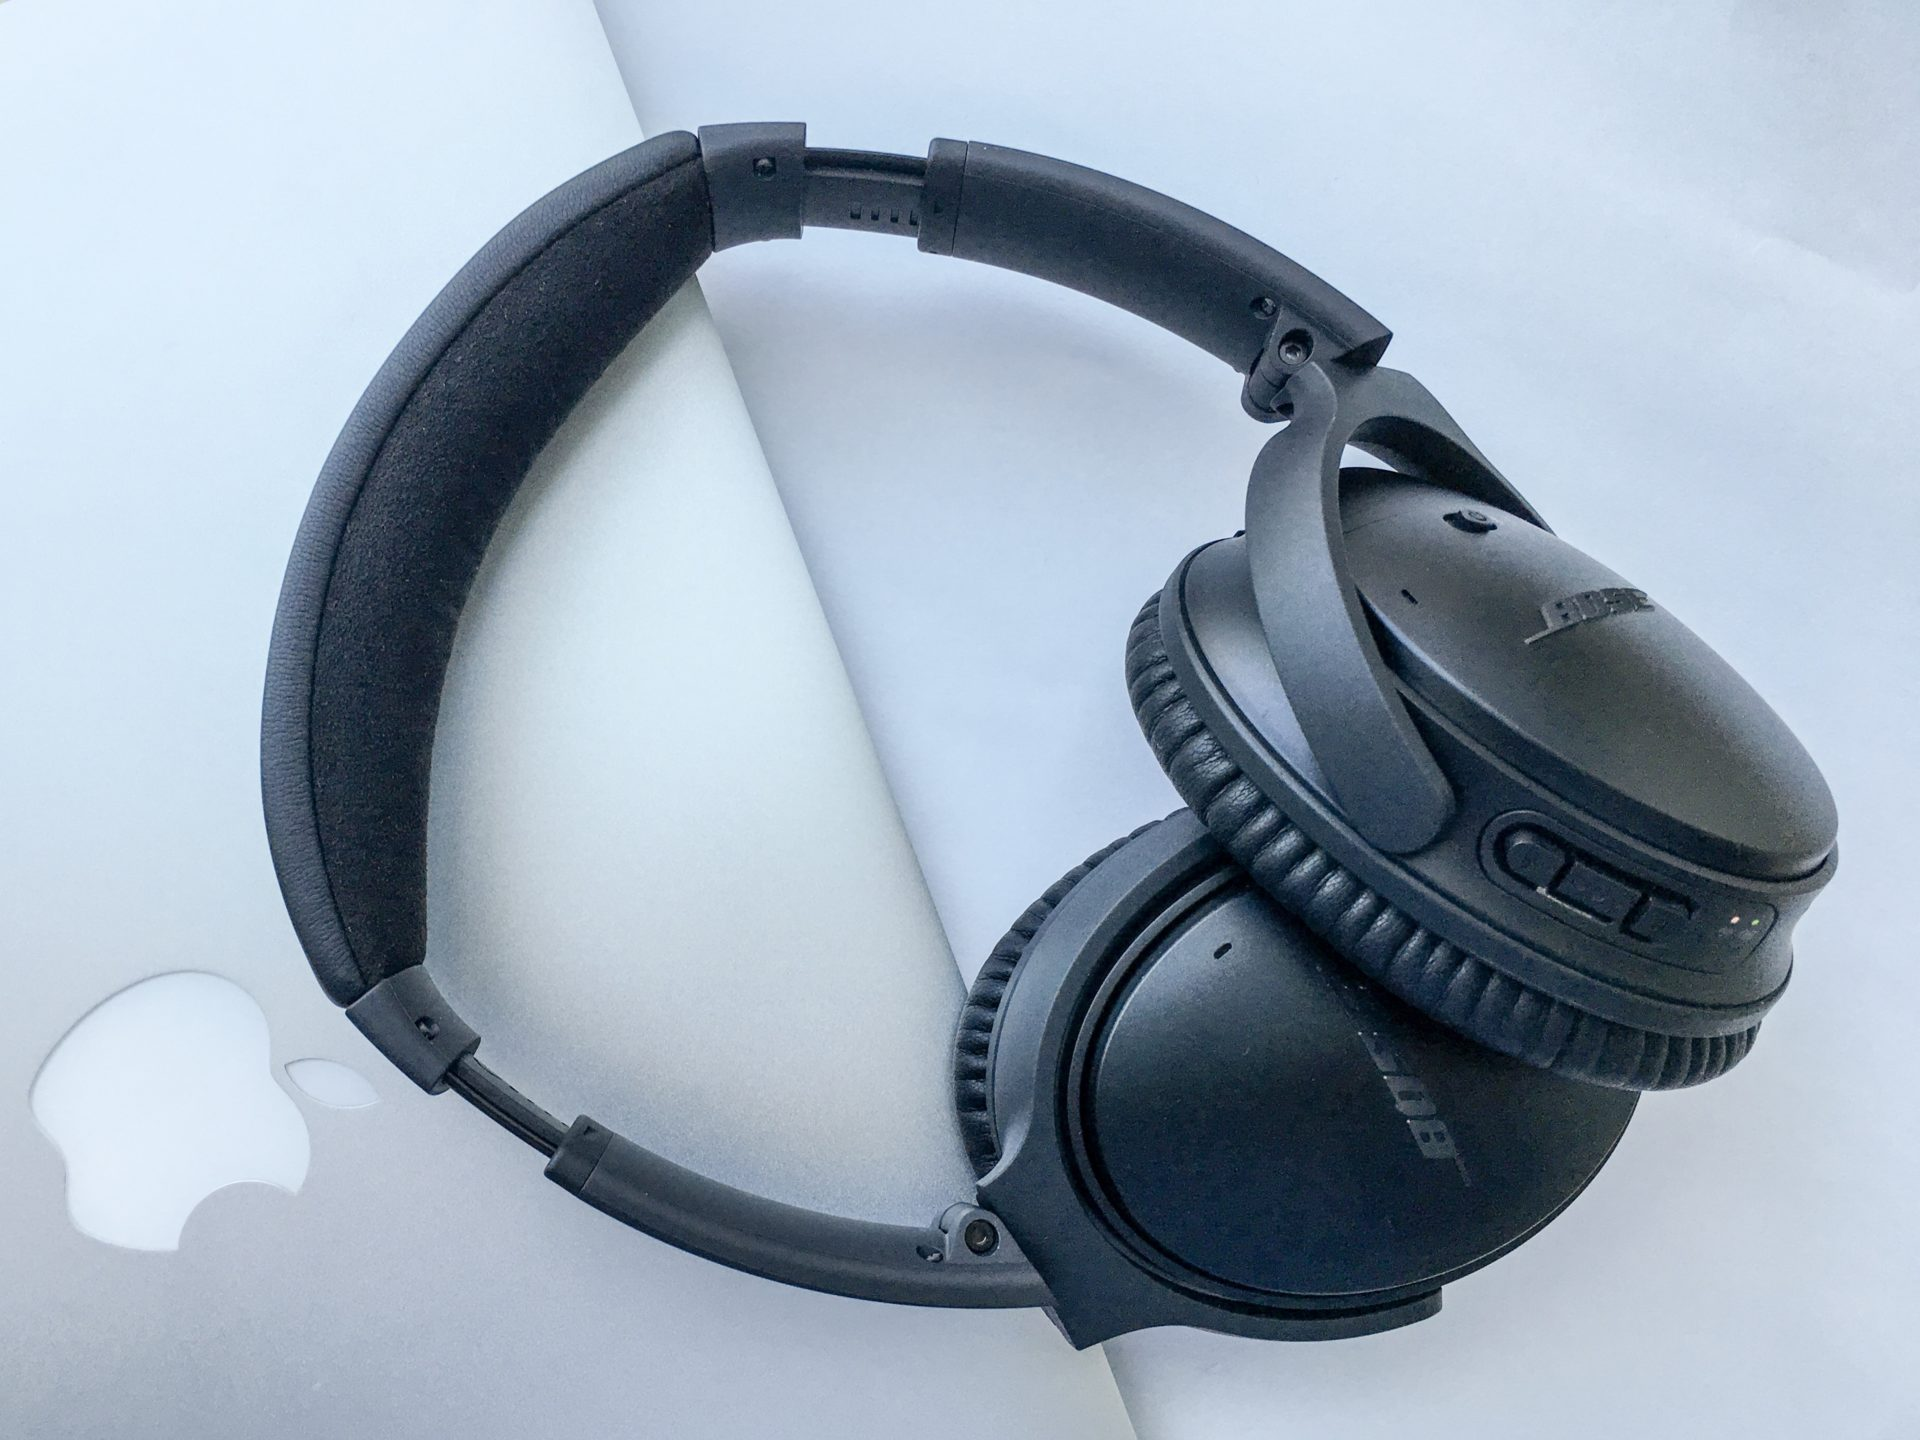 c6d3a0e8573 Review: BOSE QuietComfort 35 - The